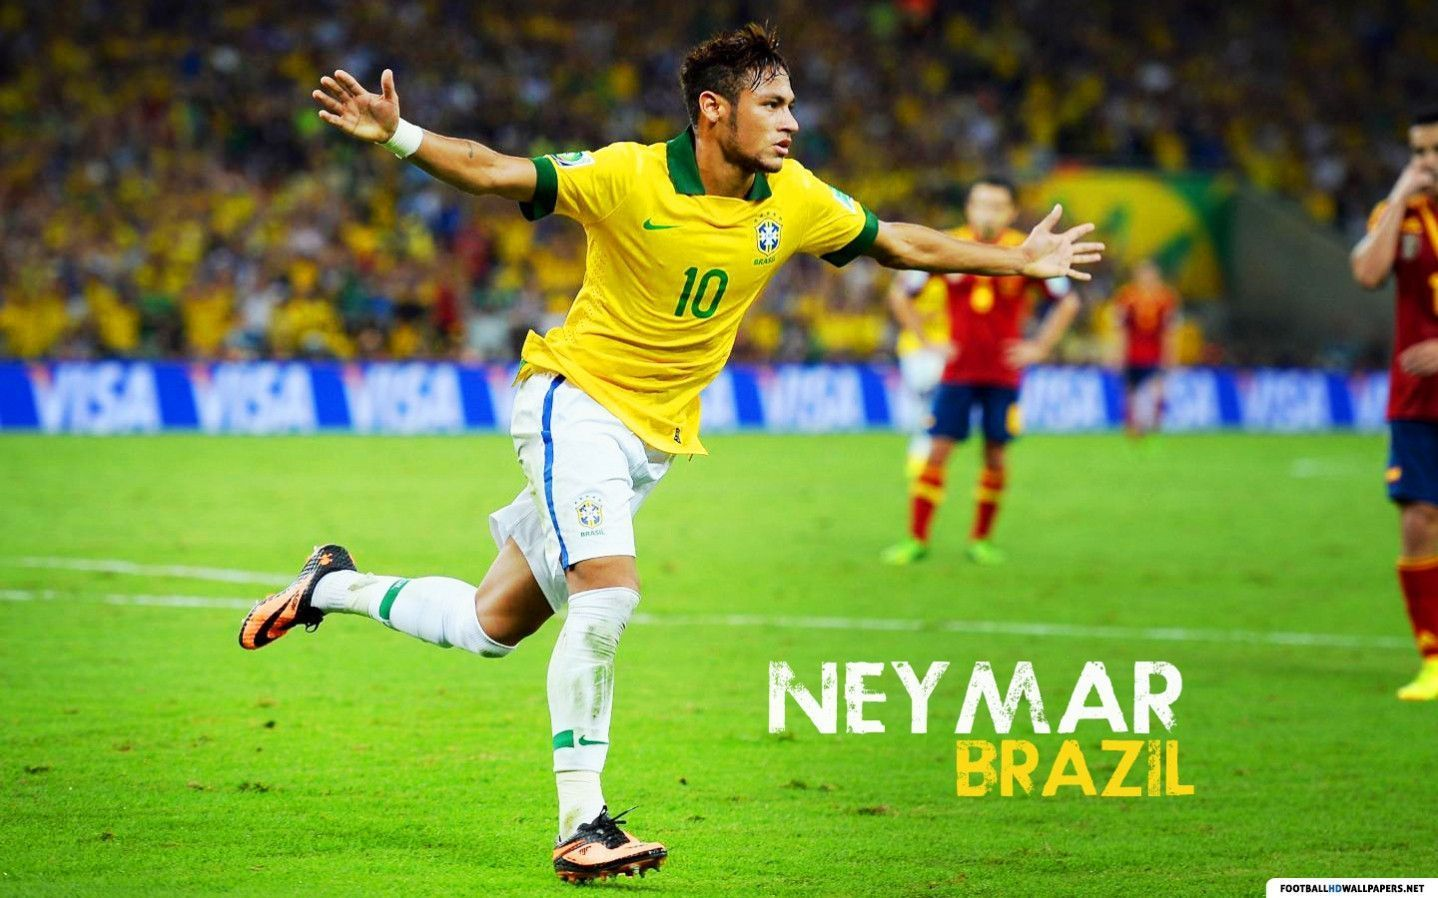 brazil neymar wallpaper 2014 - photo #12